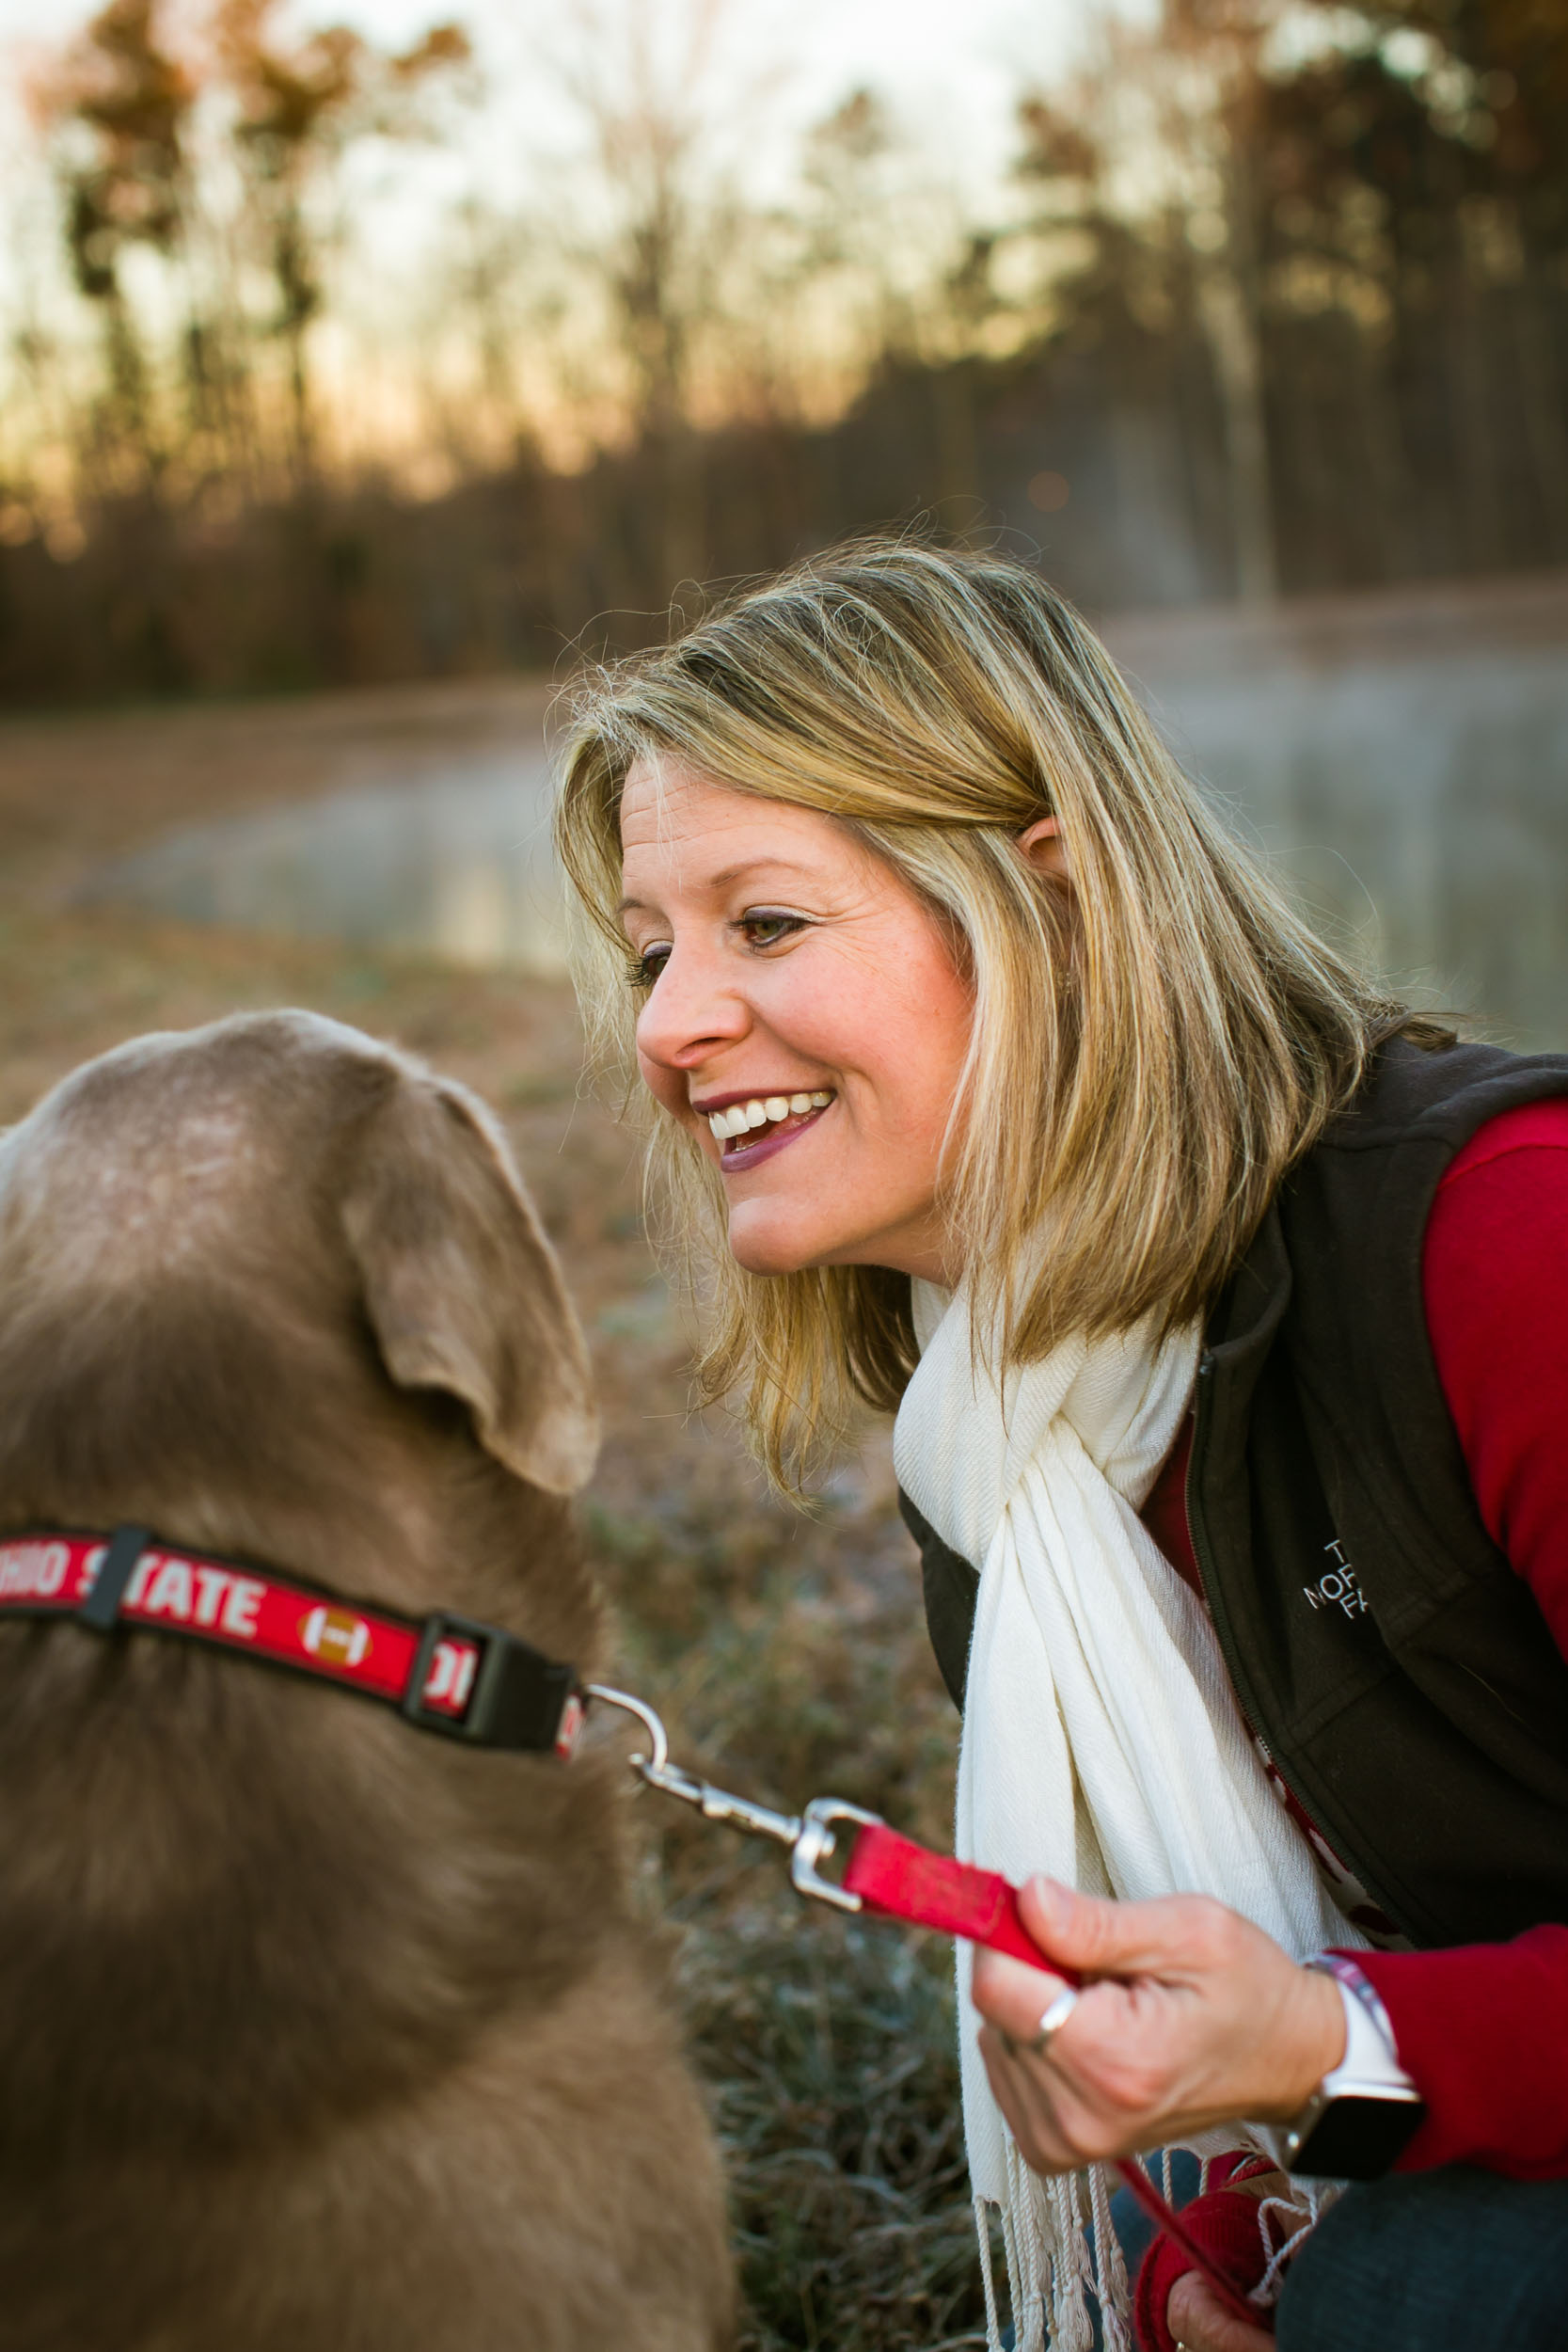 Durham Family Photographer | G. Lin Photography | Woman looking at dog and smiling at park